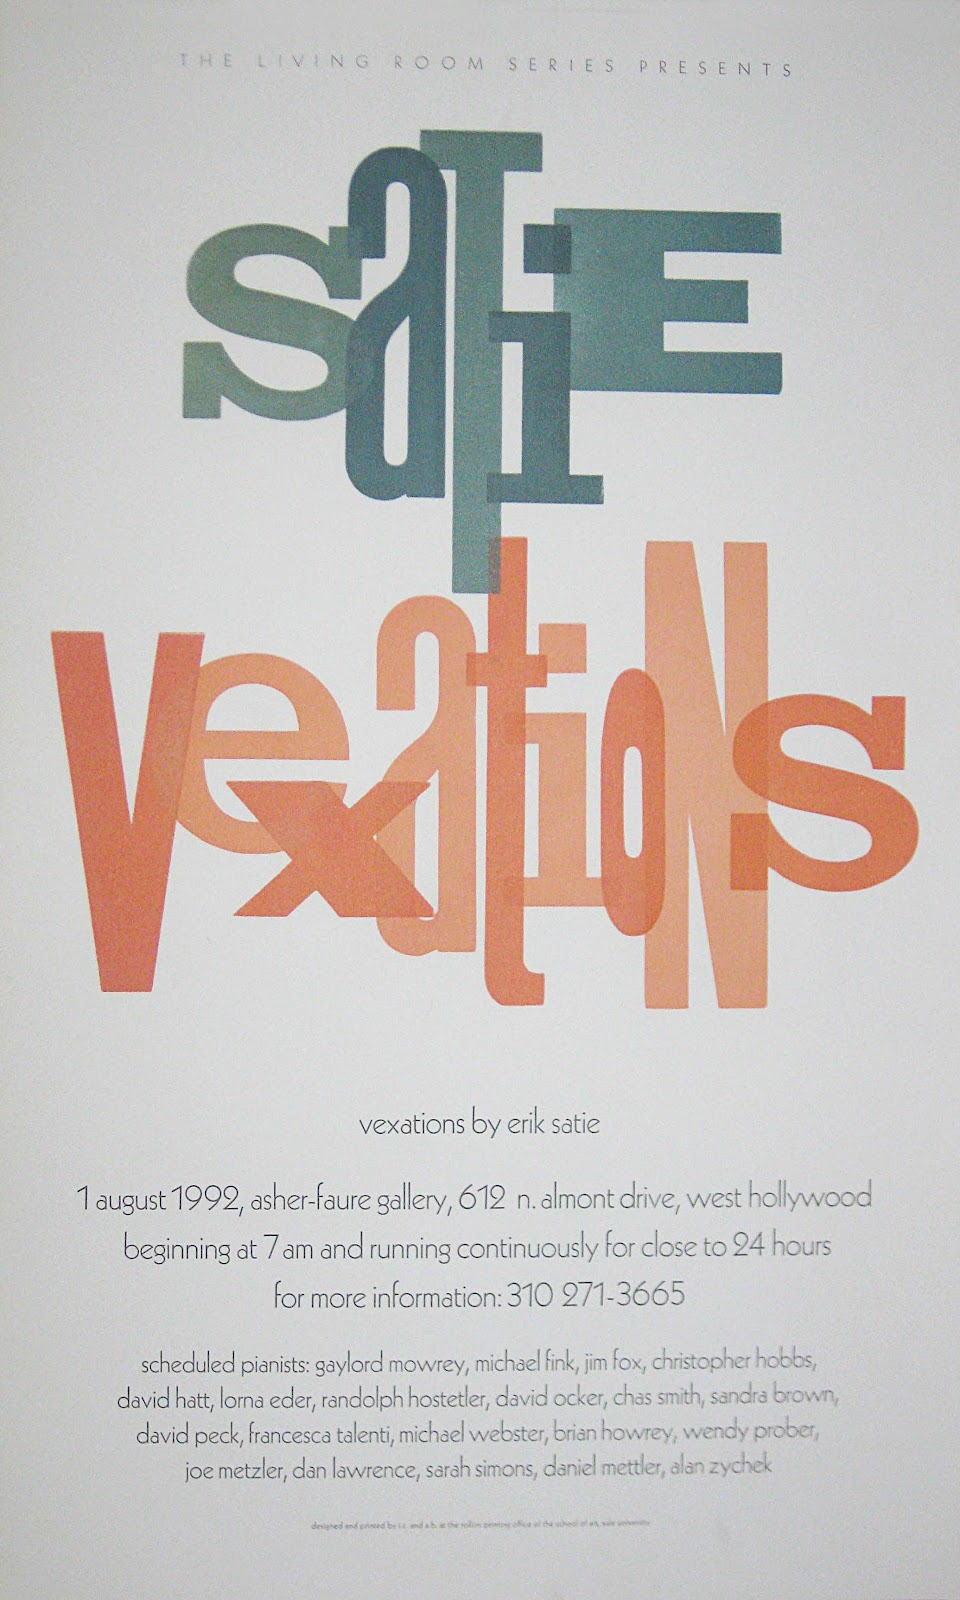 concert poster for Living Room Series performance of Erik Satie's Vexations - August 1 1992